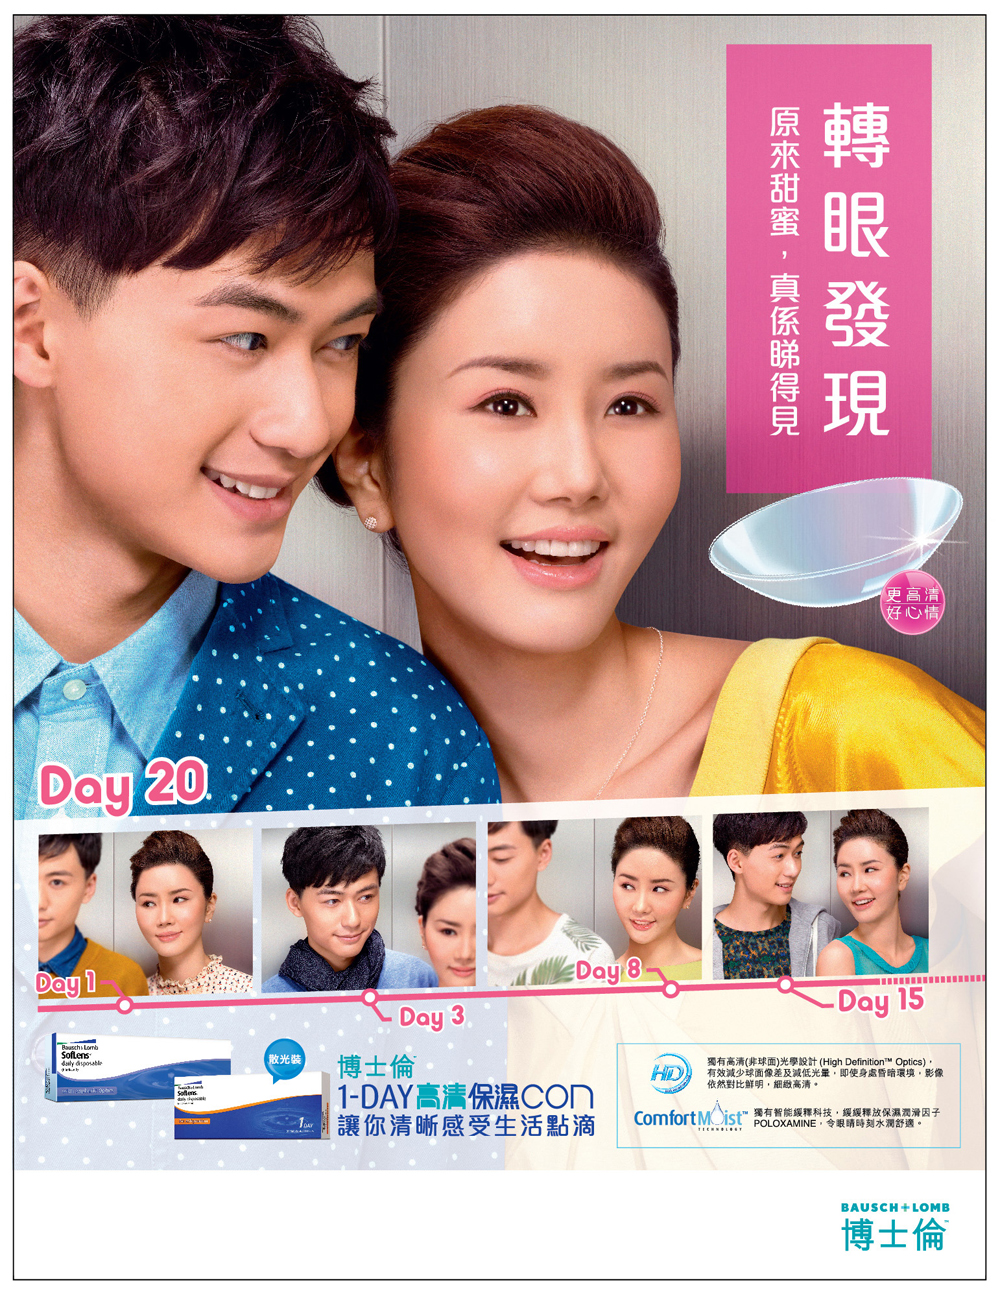 Bausch + Lomb Contact Lens Print Ad